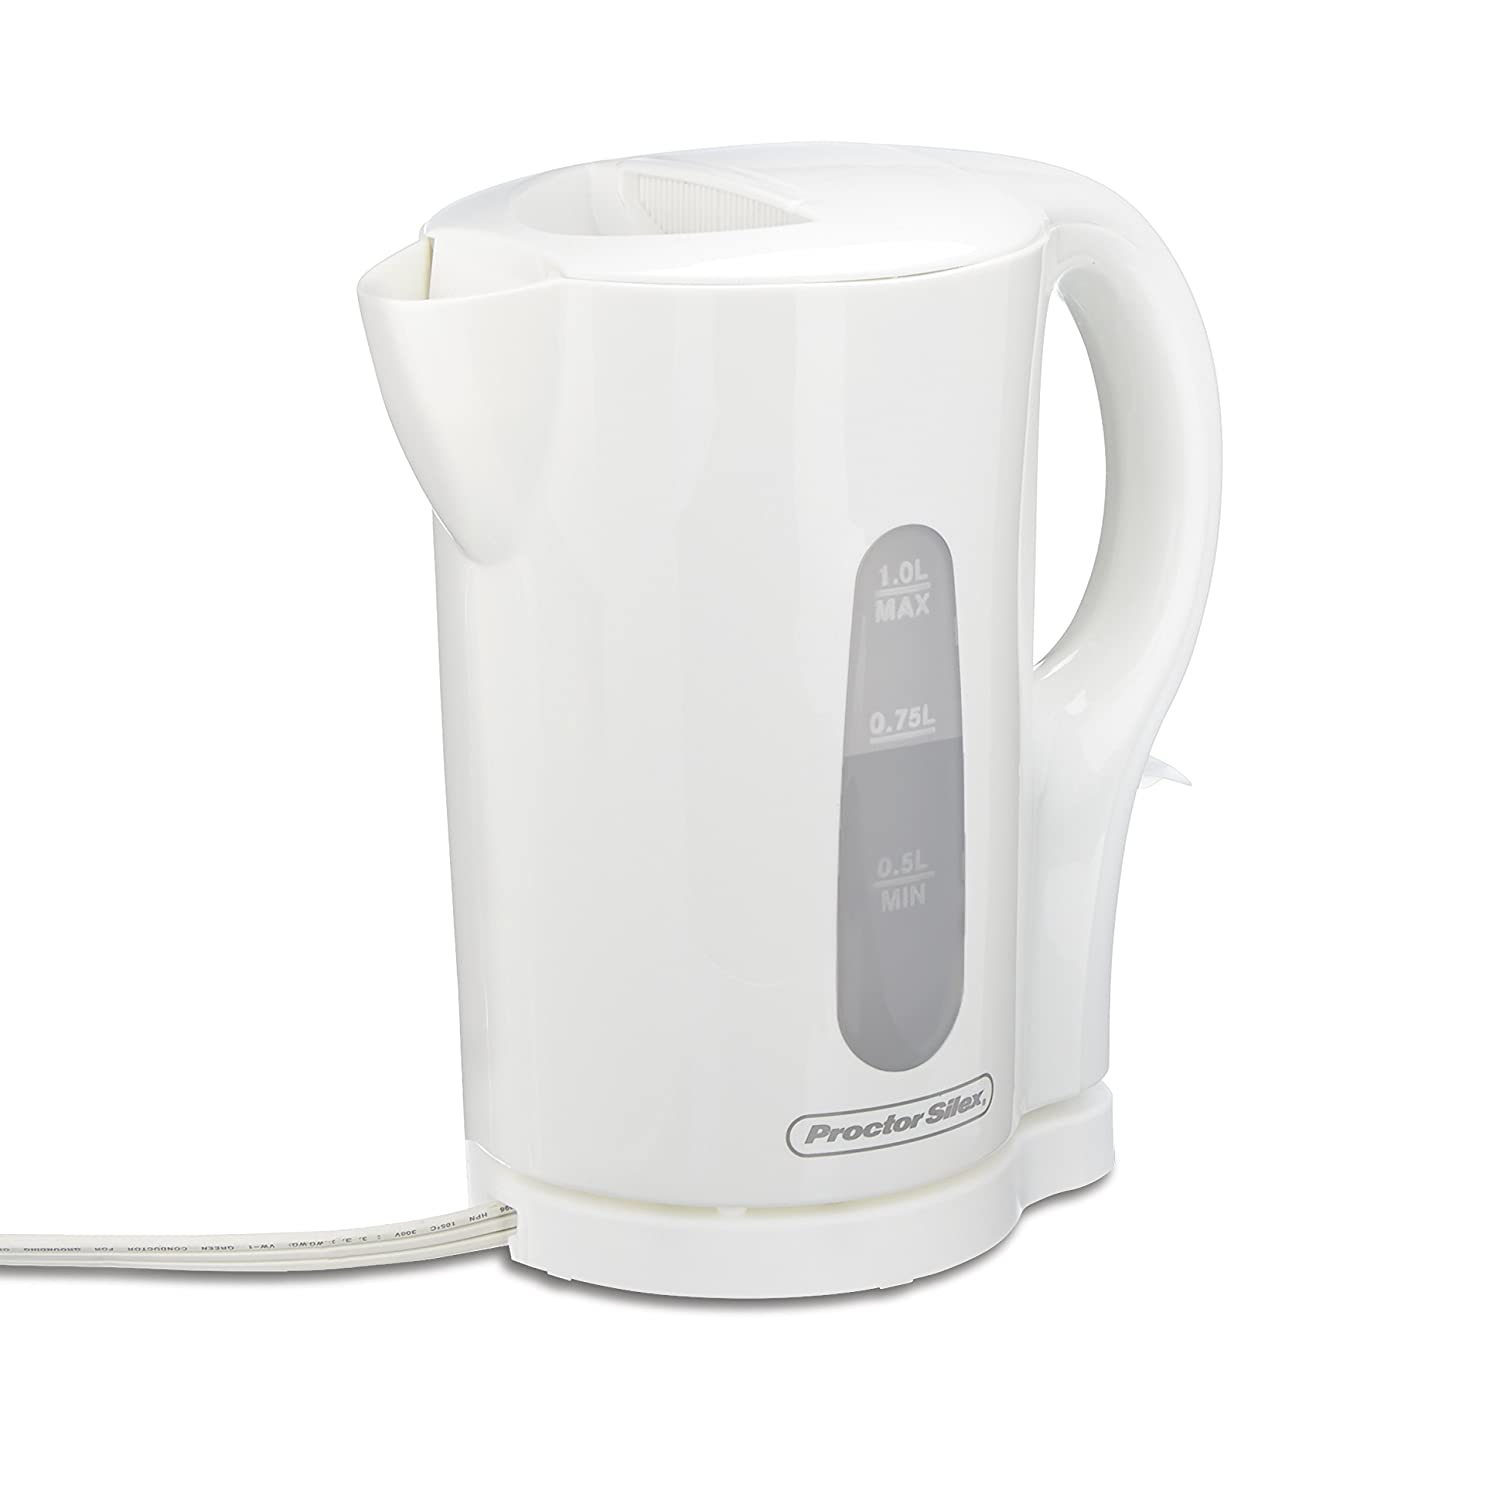 Proctor Silex 1 Liter Electric Kettle for Tea and Hot Water Cordless, Auto-Shutoff and Boil-Dry Protection, White 41005 ,